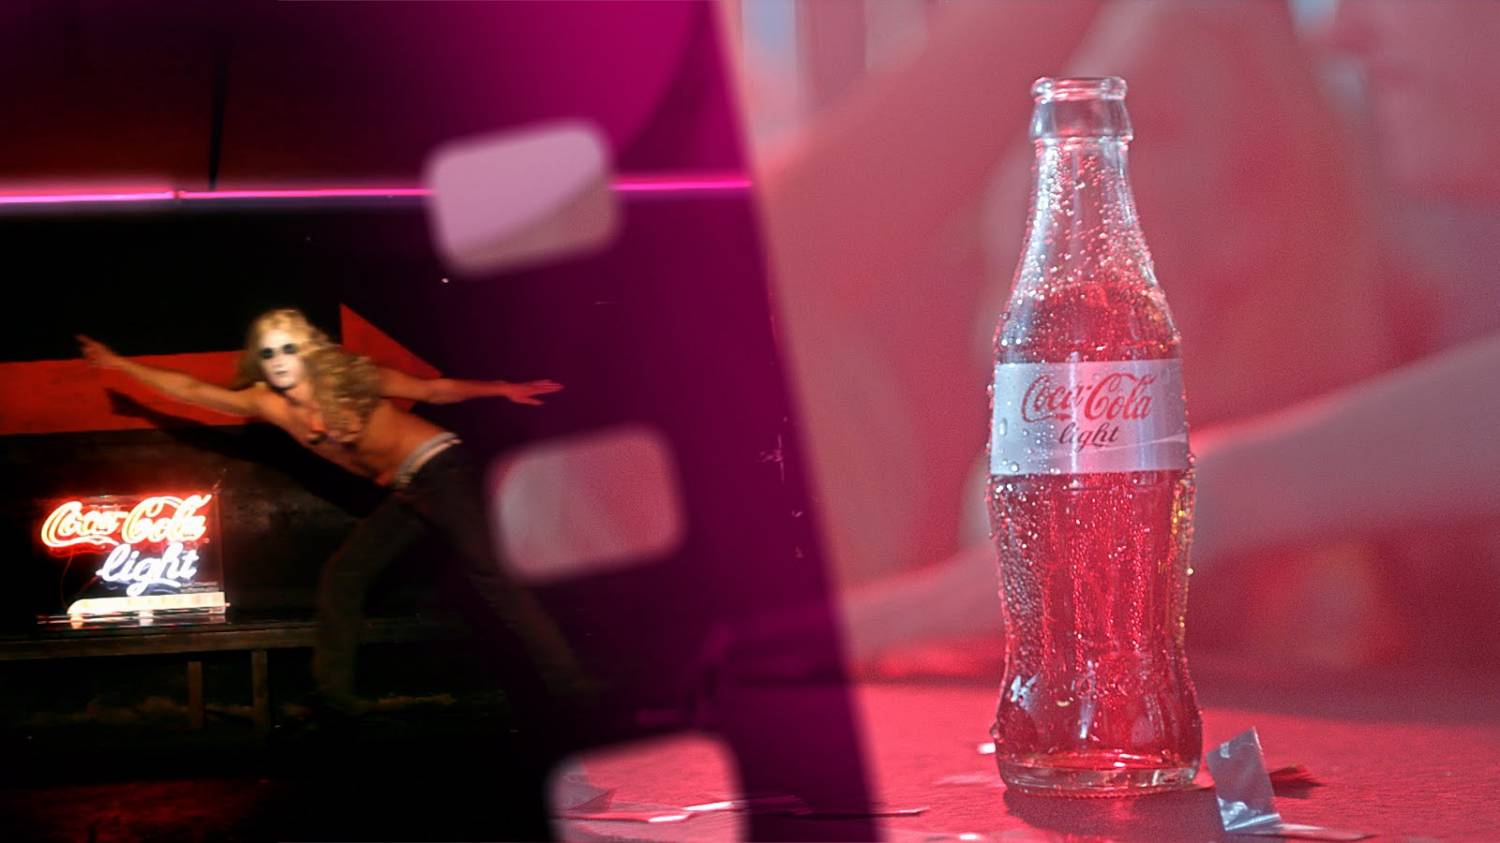 Музыка и видеоролик из рекламы Coca-Cola - Night Boost